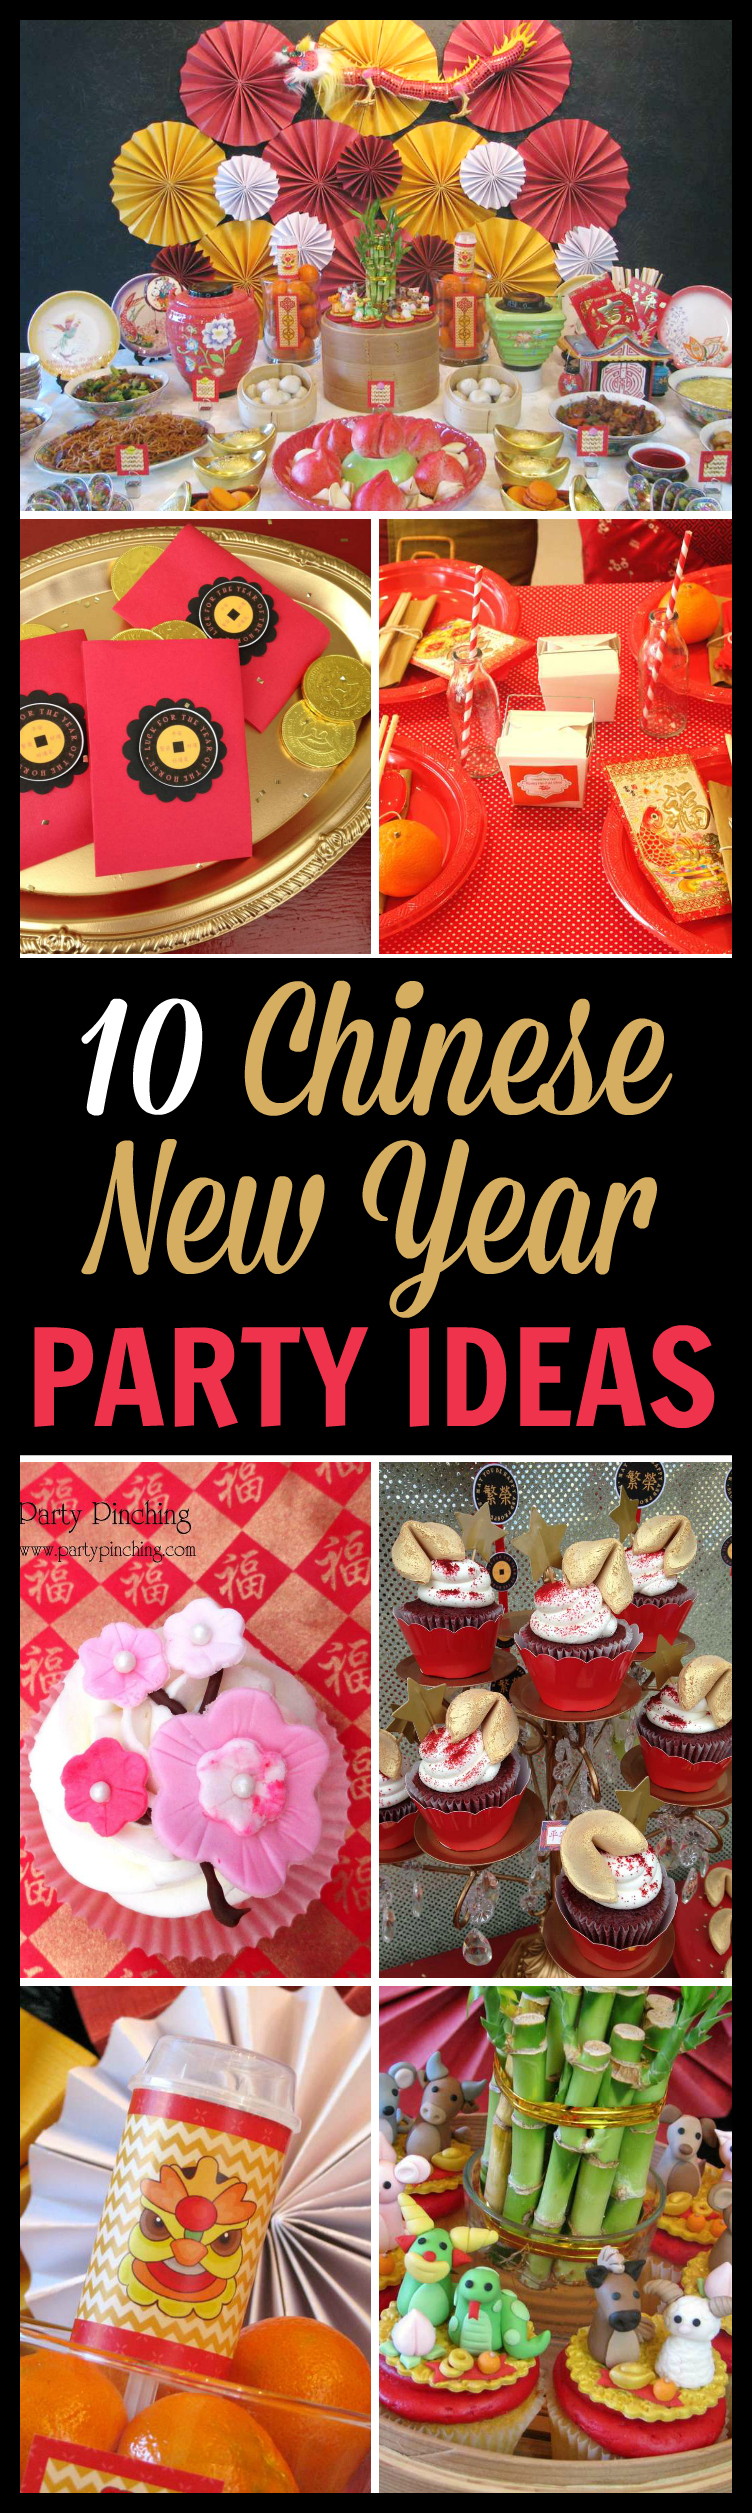 Chinese New Year Party Ideas | Catch My Party